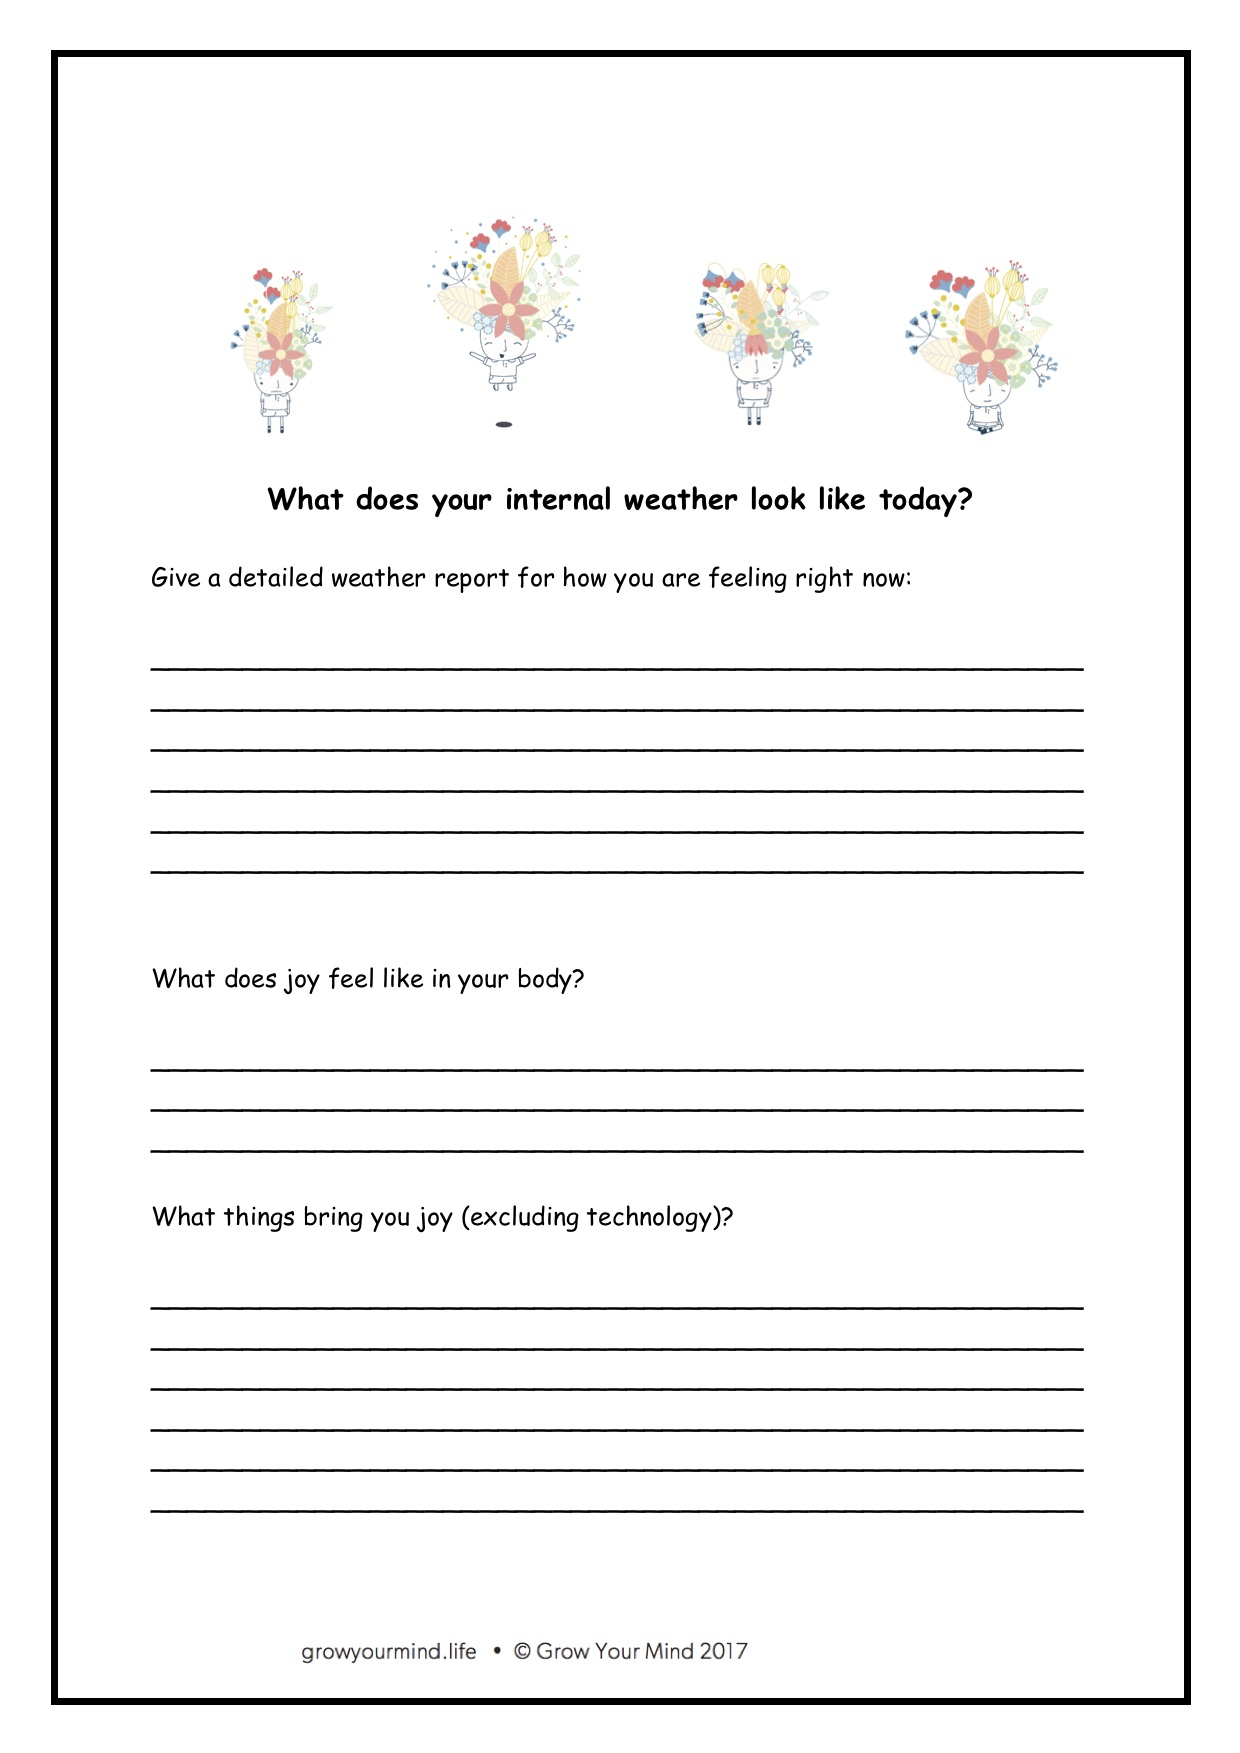 Internal weather worksheet - For: Year 2-6Theme: MindfulnessTo go with: Introductory lessons, Anger lessons or use in isolation